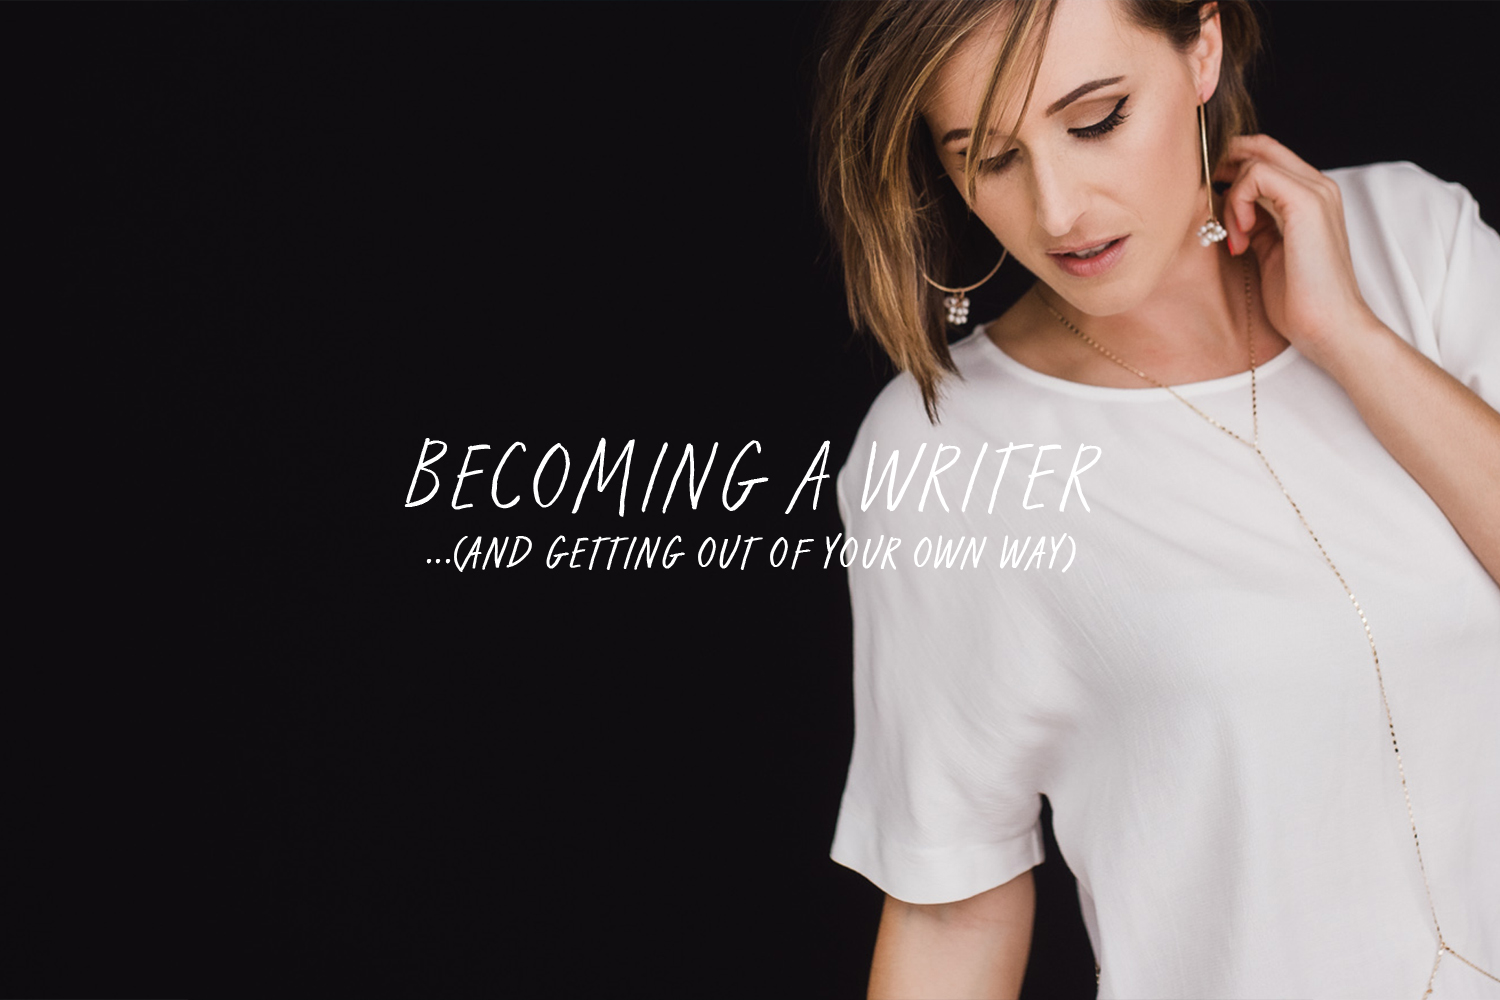 Becoming a writer - and getting out of your own way